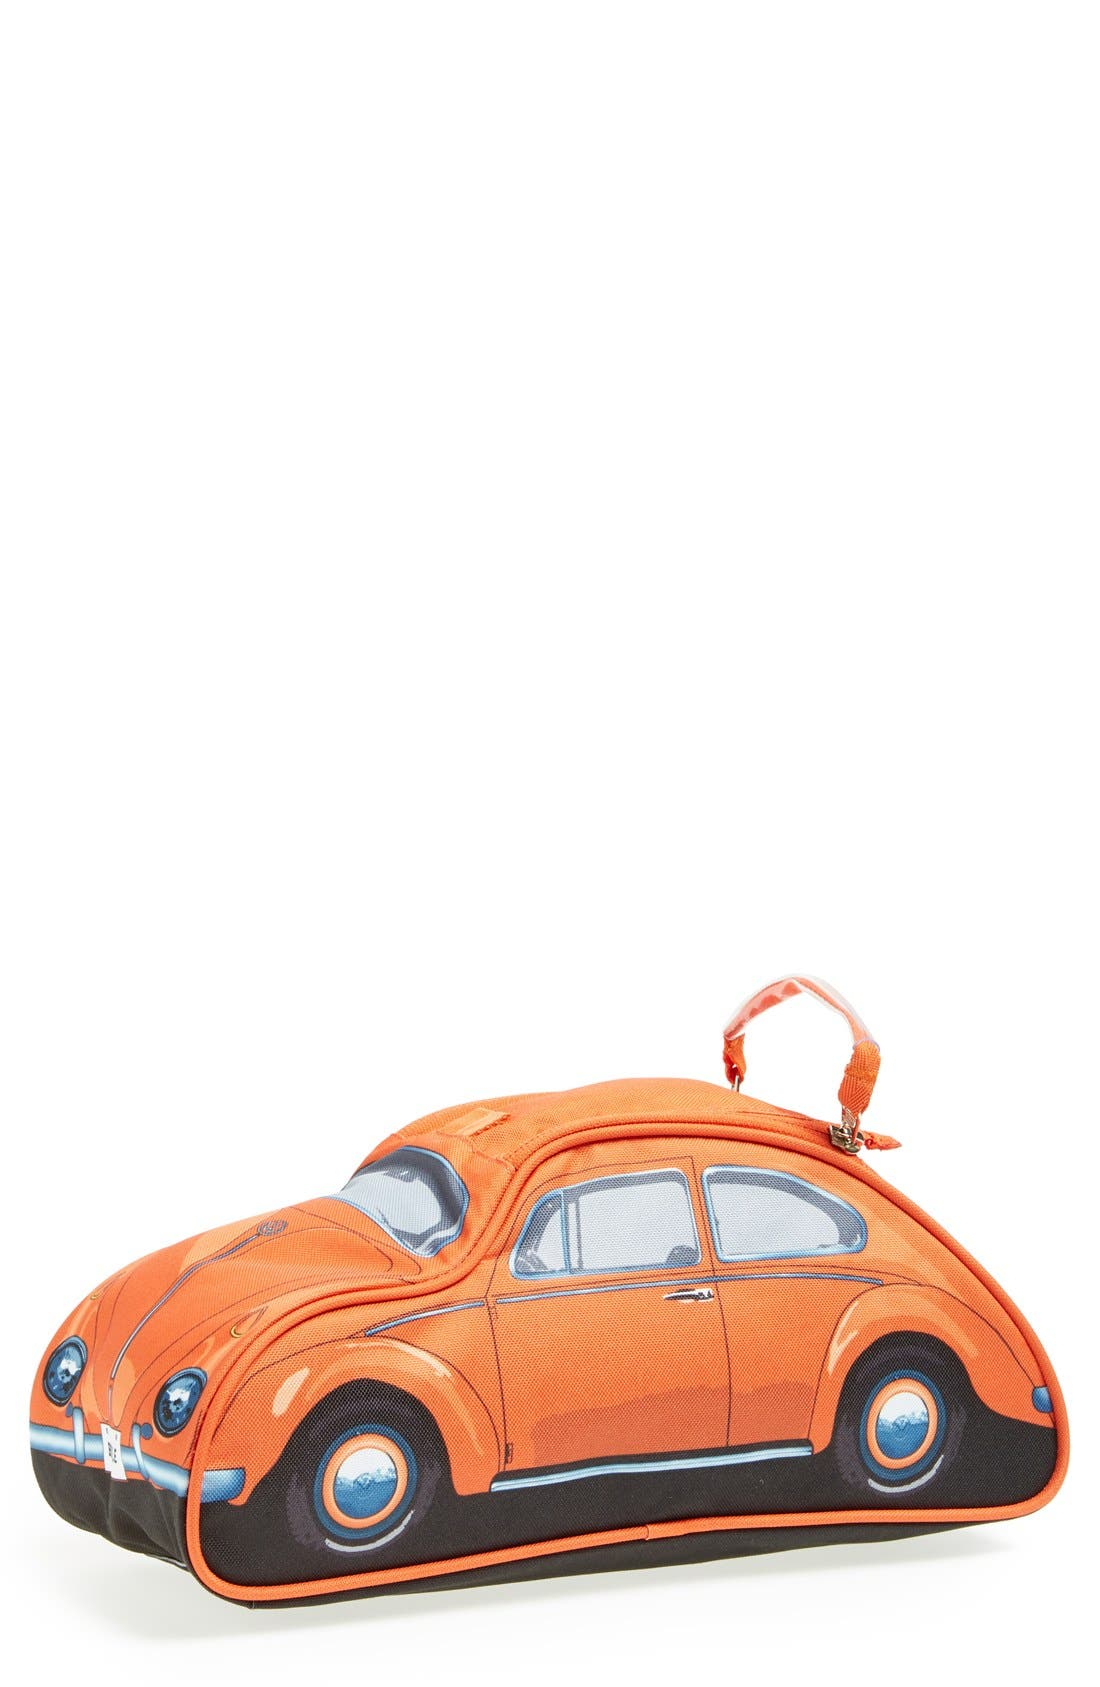 Alternate Image 1 Selected - The Monster Factory 'VW Beetle' Toiletry Bag